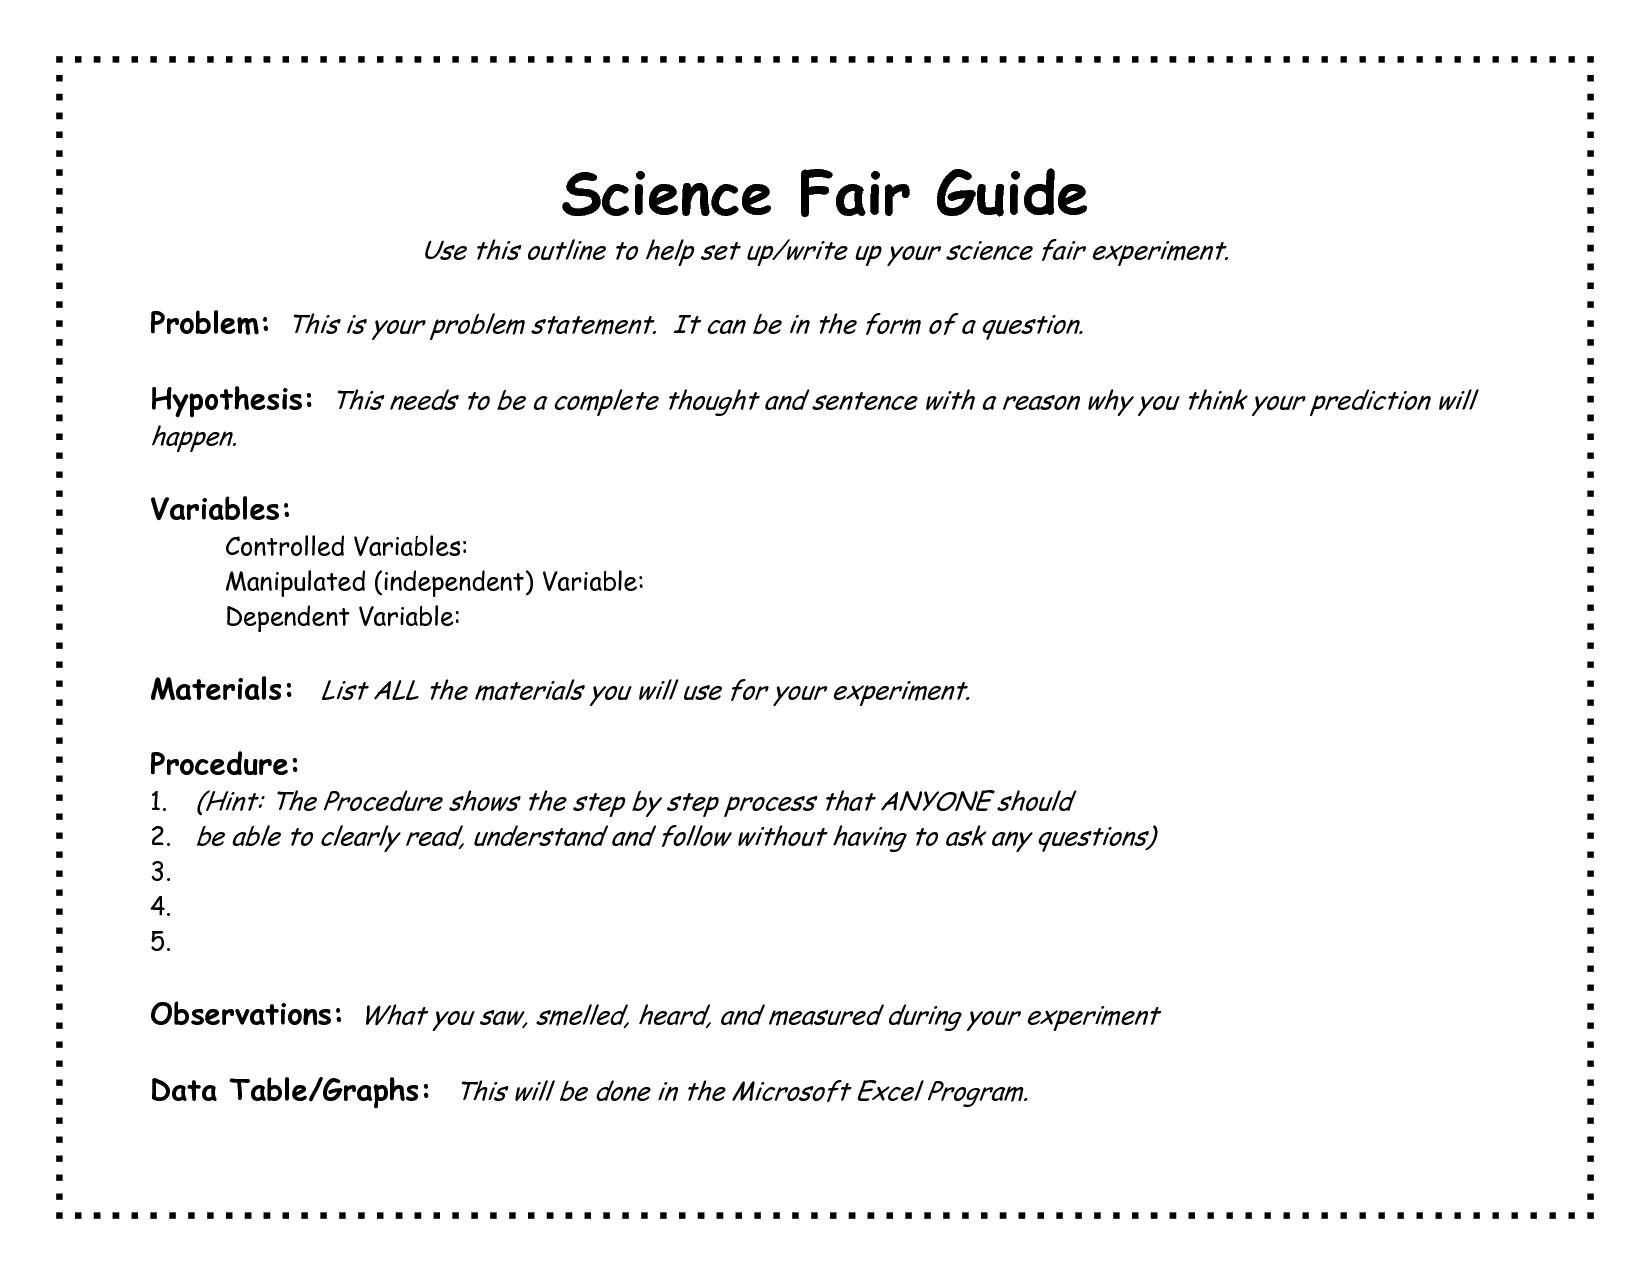 005 Science Fair Research Stunning Paper Background Sample Rubric Full